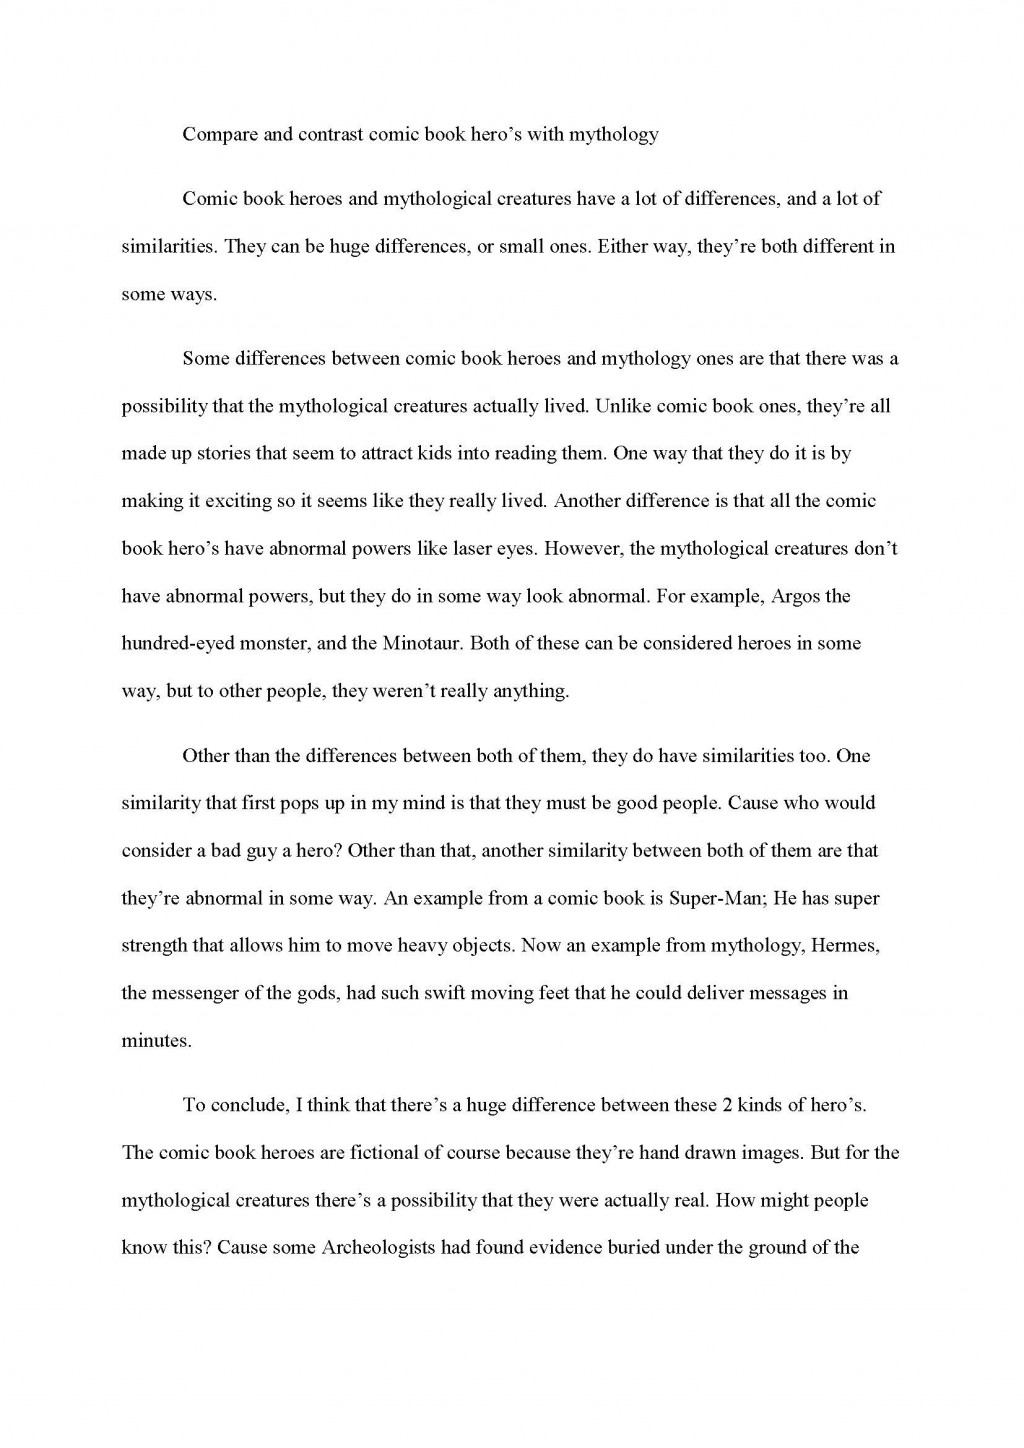 001 Compare And Contrast Essay Example Formidable A Apush Thesis Topics 2017 Large